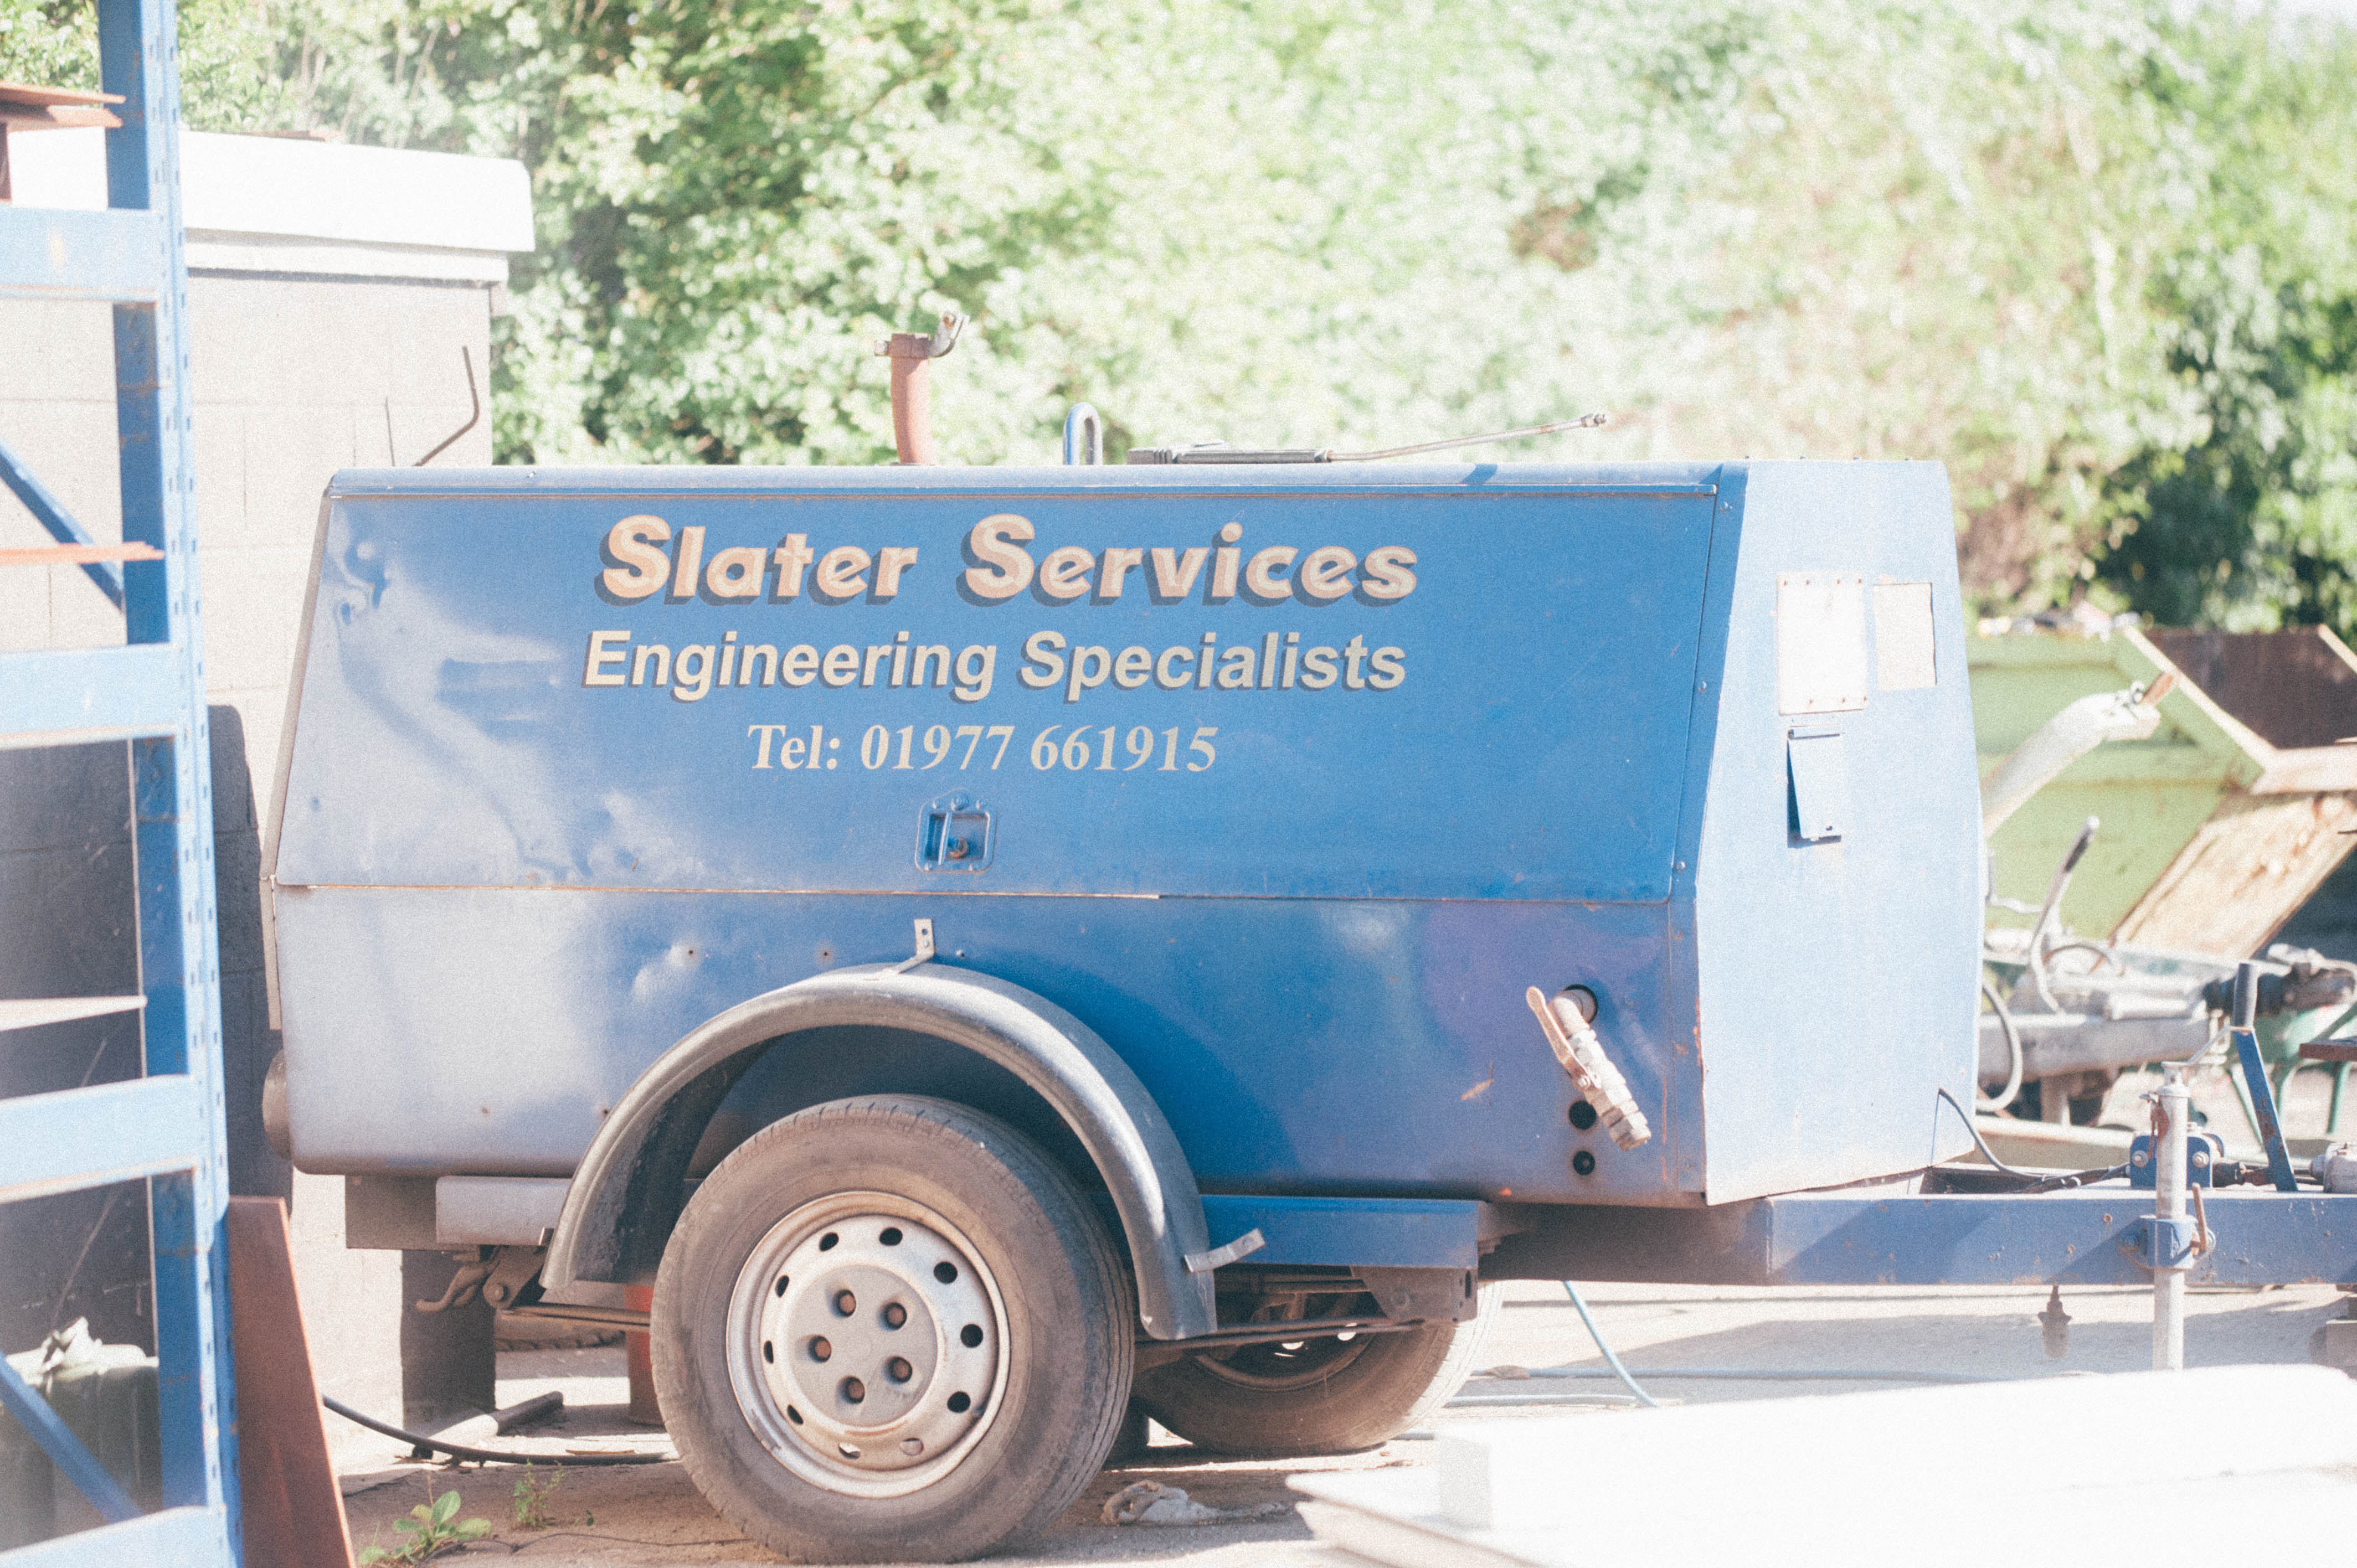 Slater Services